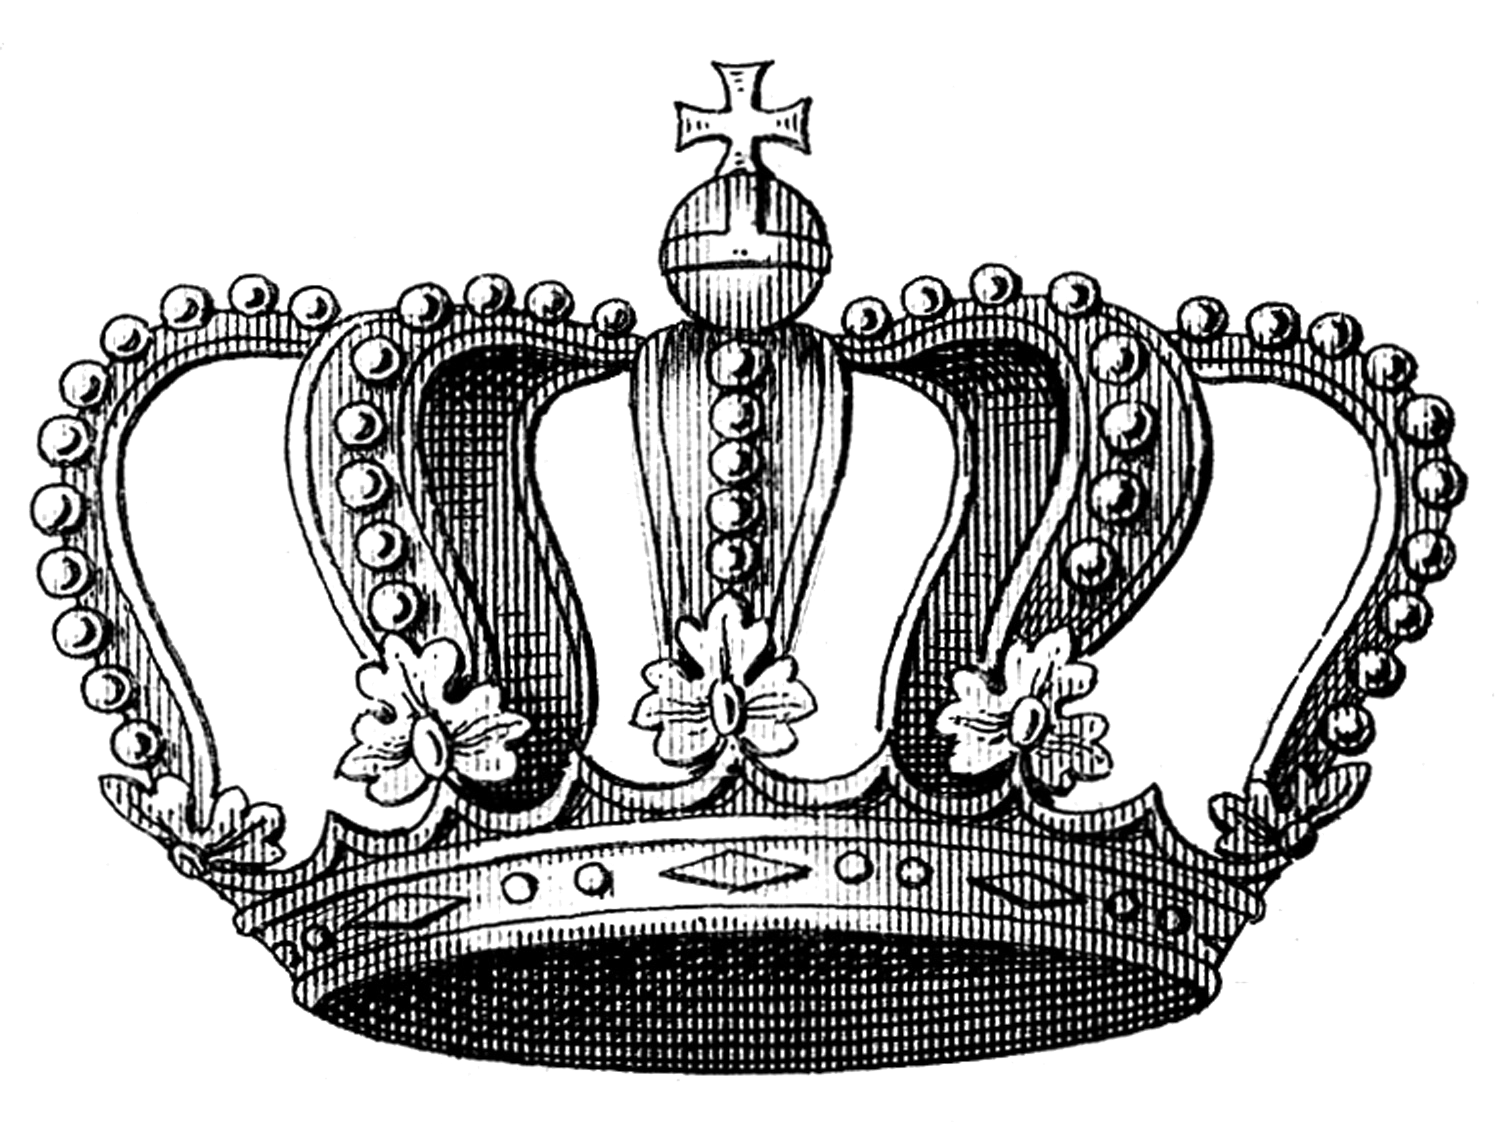 Black and white clipart of male crown image Crown Vintage clothing Clip art - crown 1500*1134 transprent Png ... image